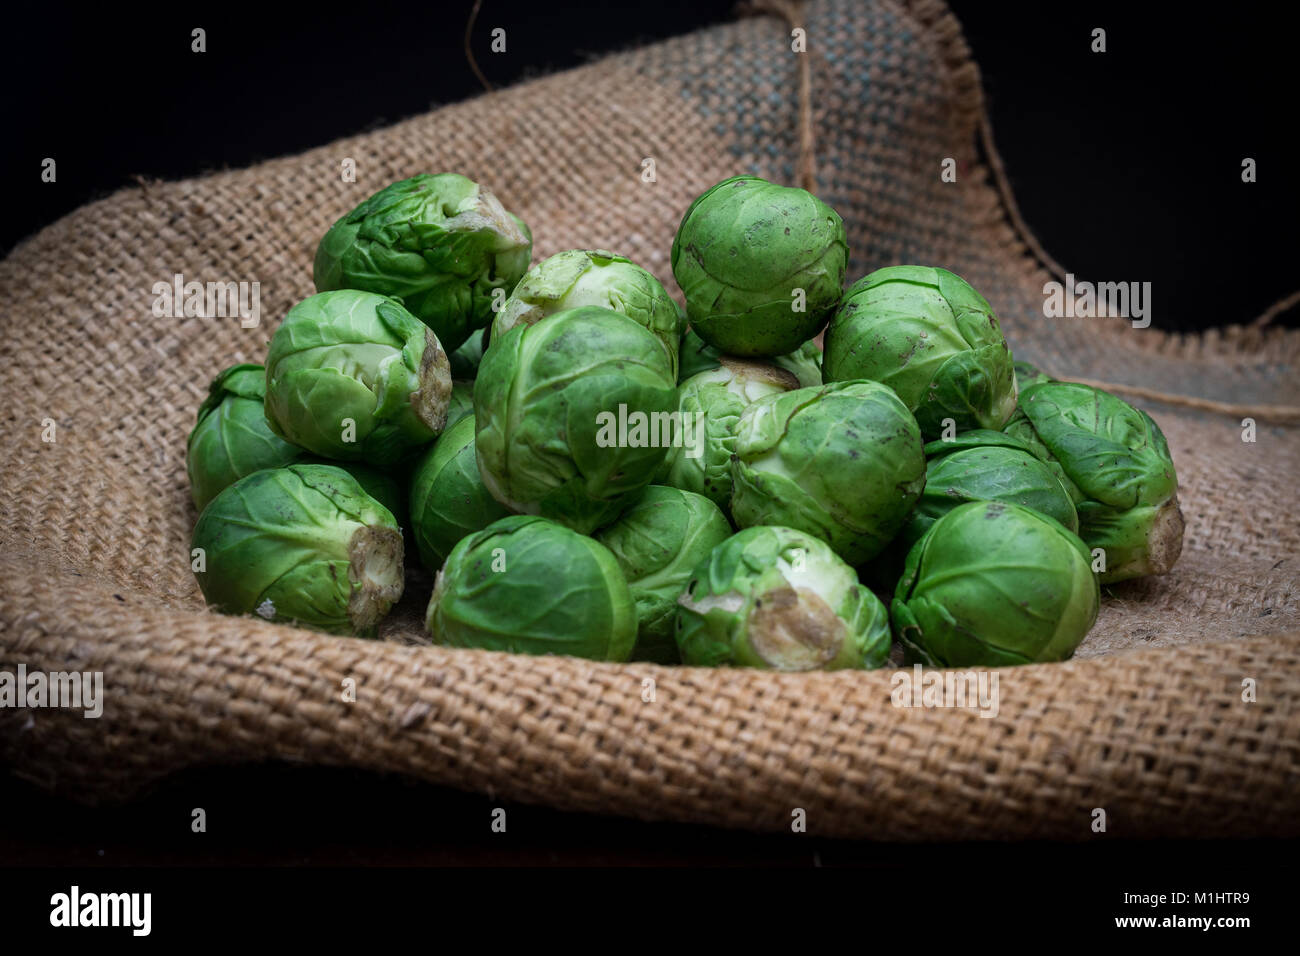 Brussel sprouts on hessian - Stock Image